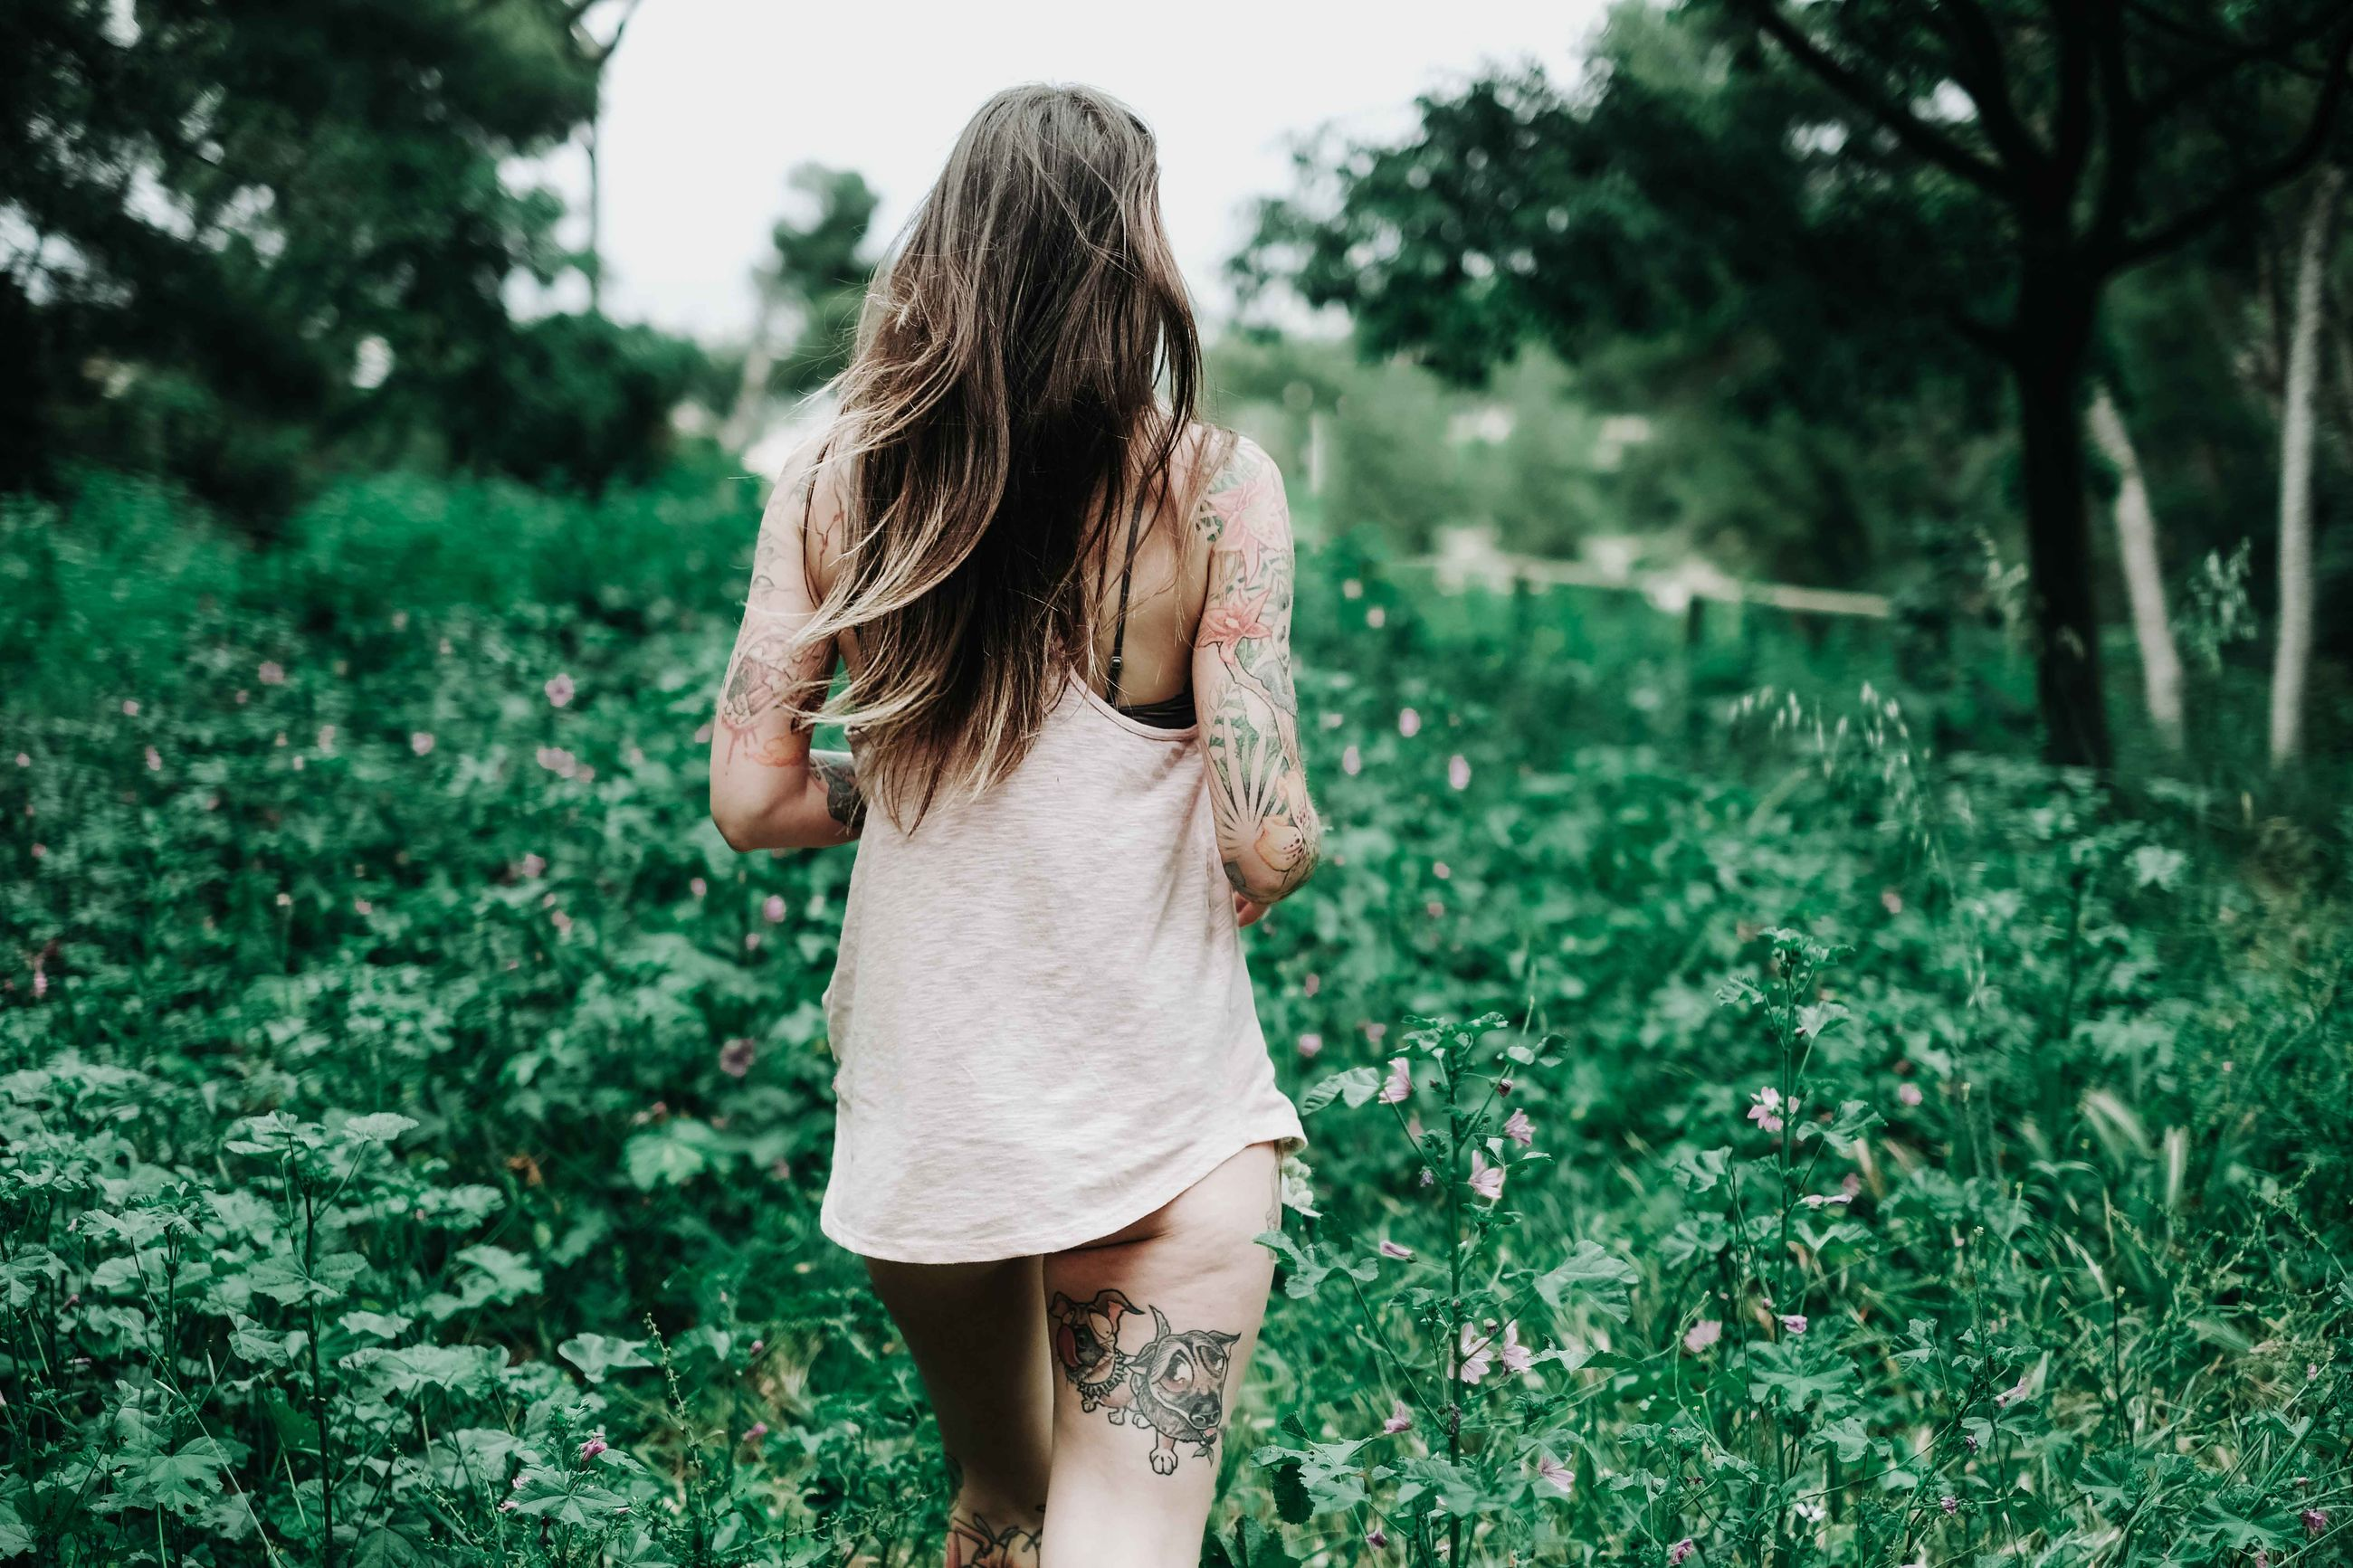 plant, hairstyle, one person, tree, real people, green color, land, rear view, women, three quarter length, day, lifestyles, growth, casual clothing, nature, long hair, leisure activity, focus on foreground, hair, grass, outdoors